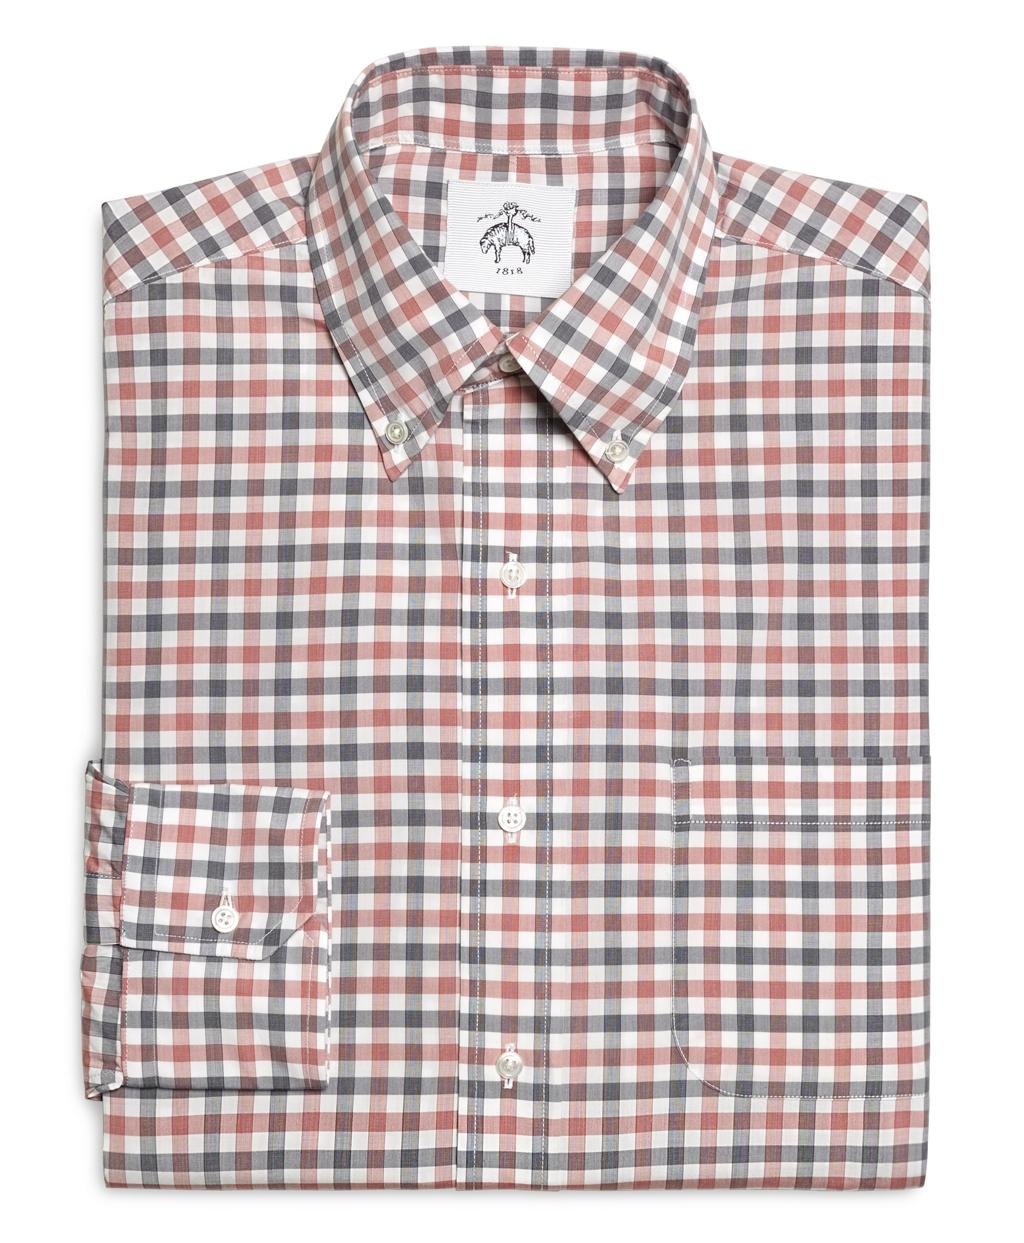 Lyst brooks brothers red navy and white check button for Brooks brothers custom shirt